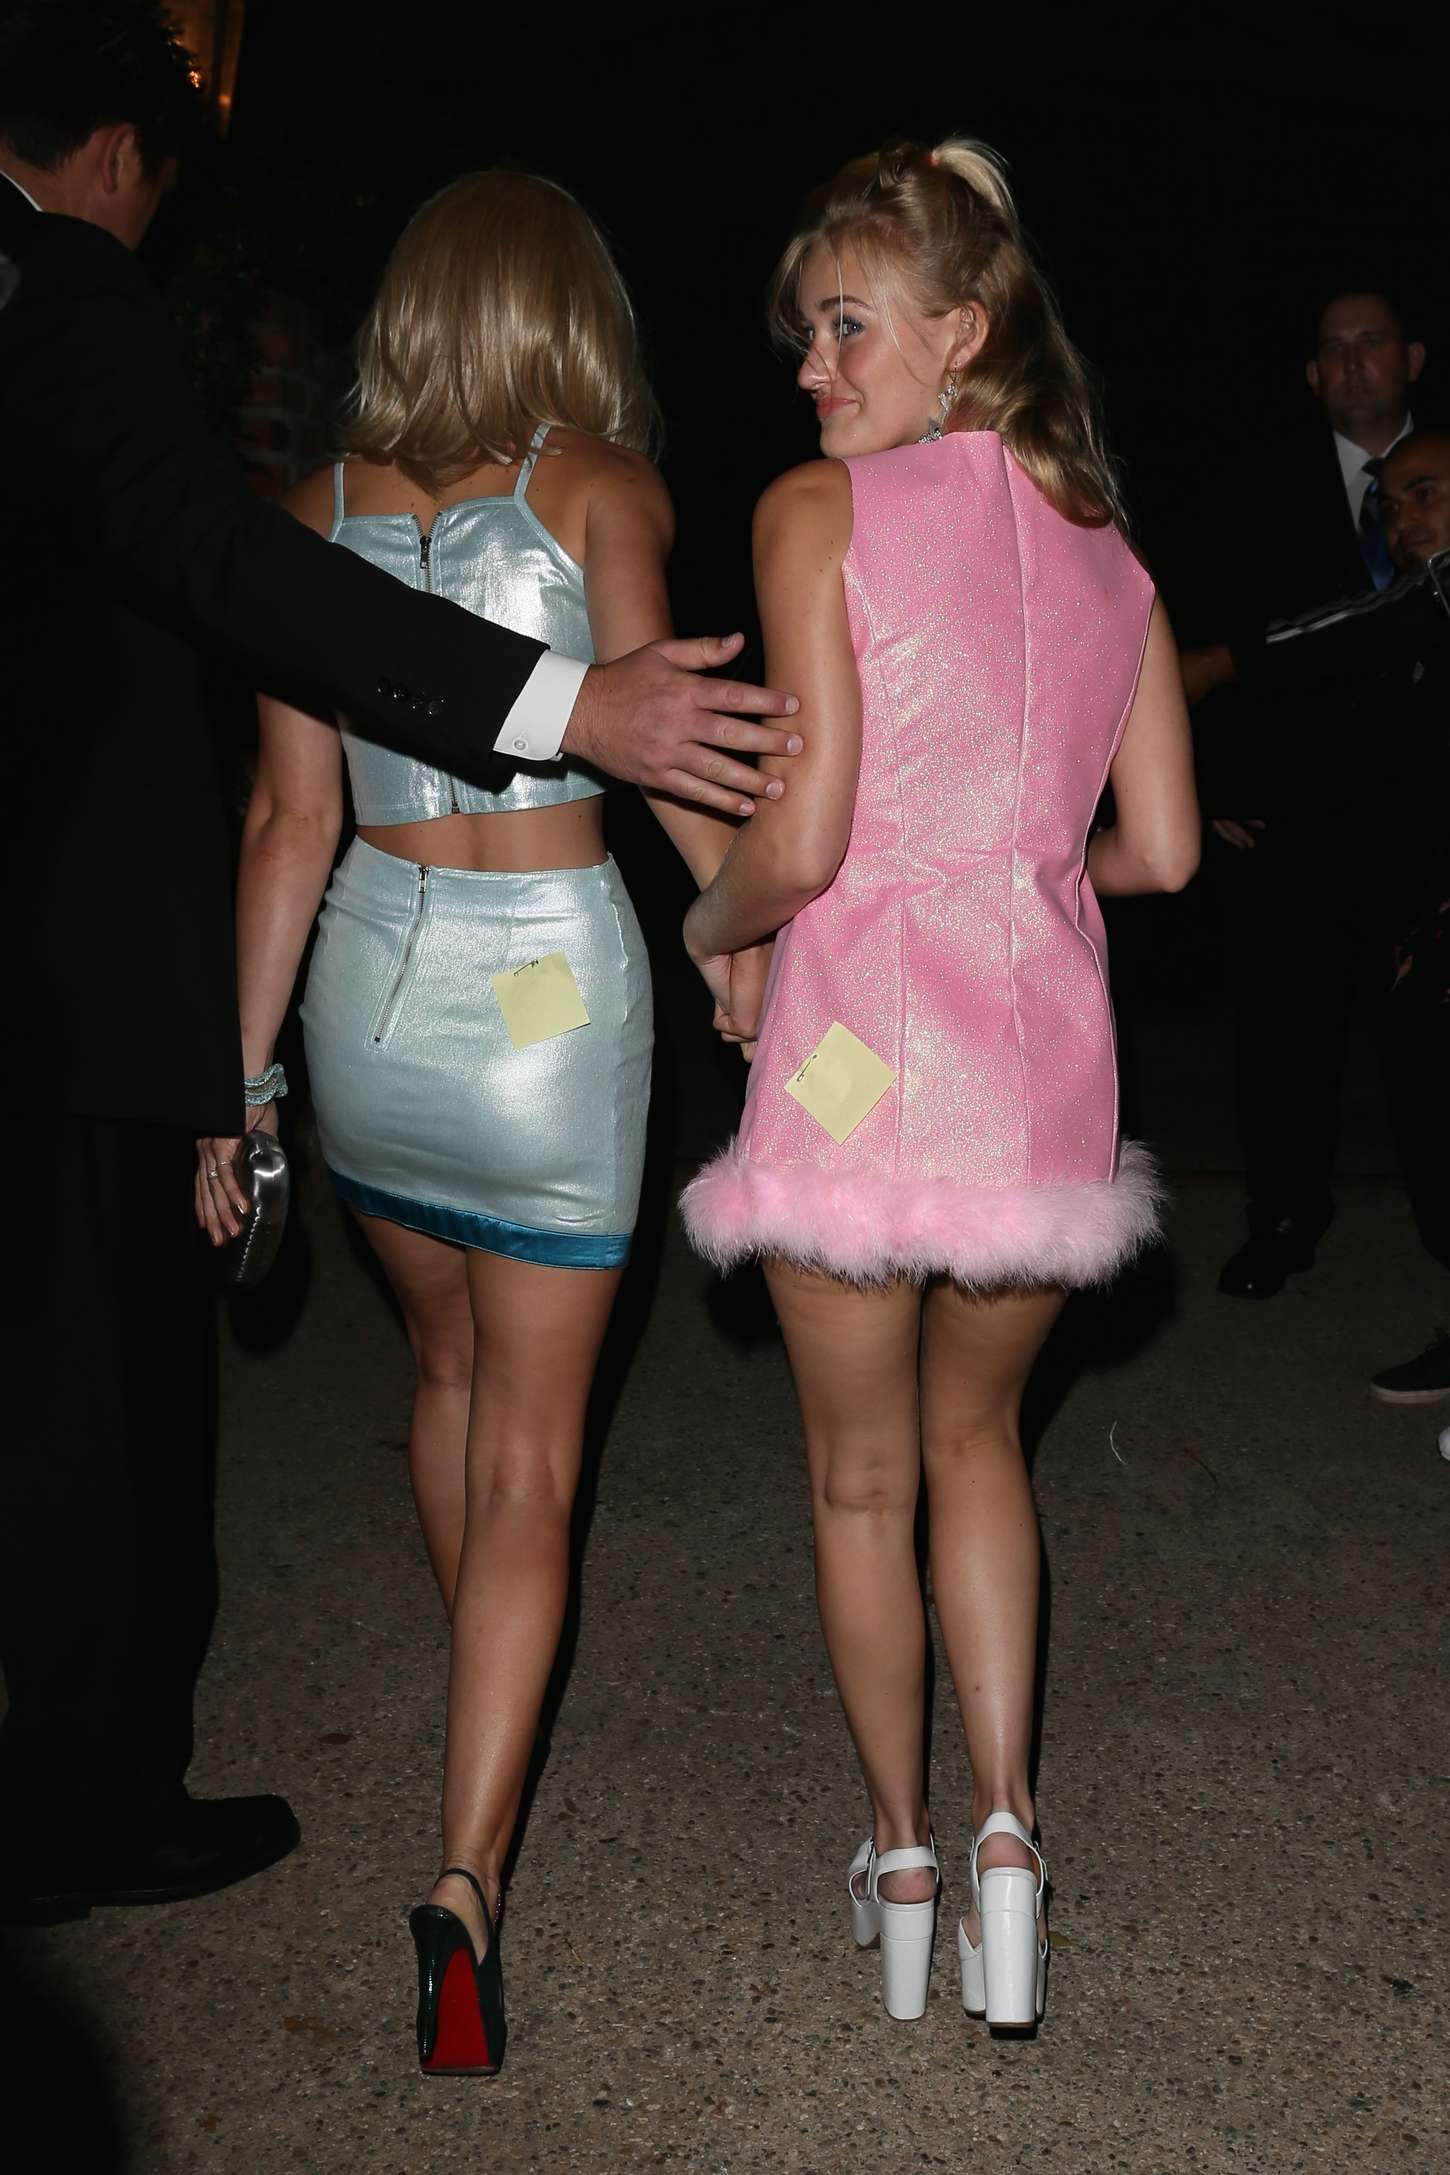 aly and aj michalka kate hudson halloween bash 2014 10 full size - Halloween On The Hudson